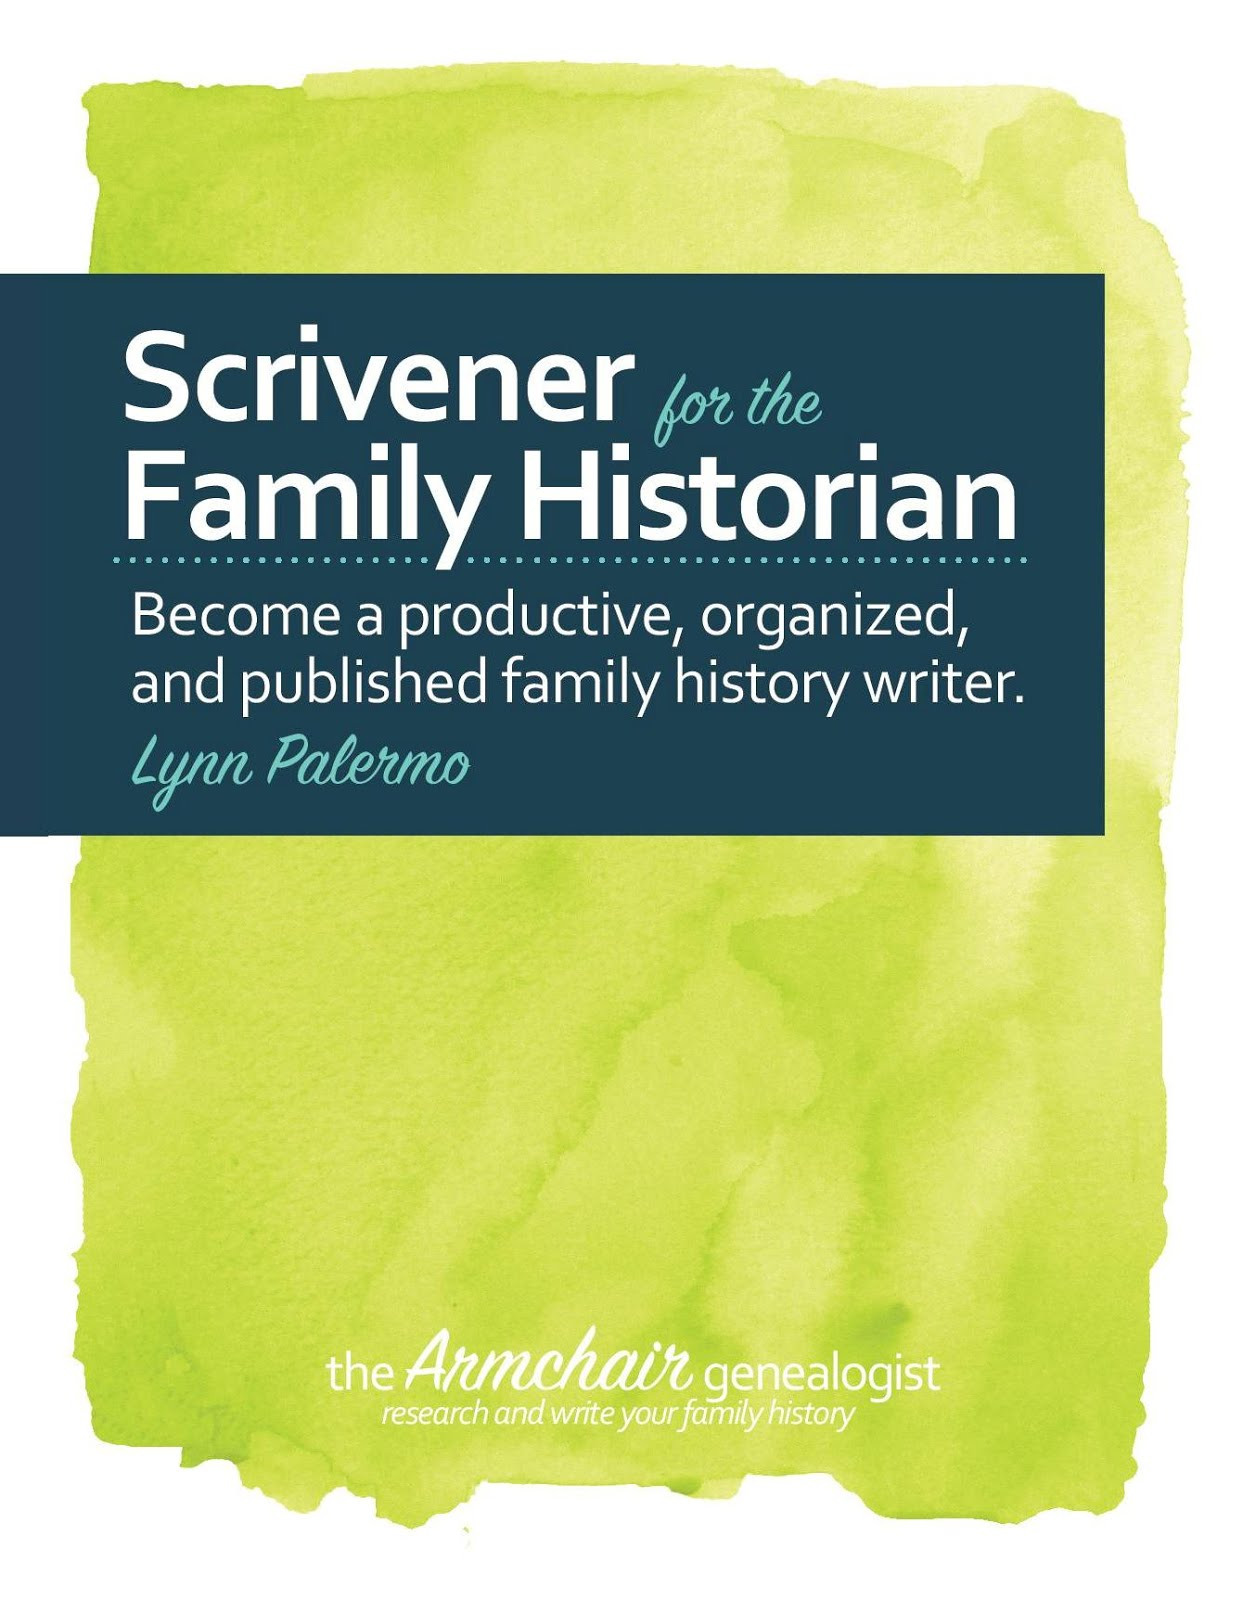 One More Reason You Should Be Writing With Scrivener